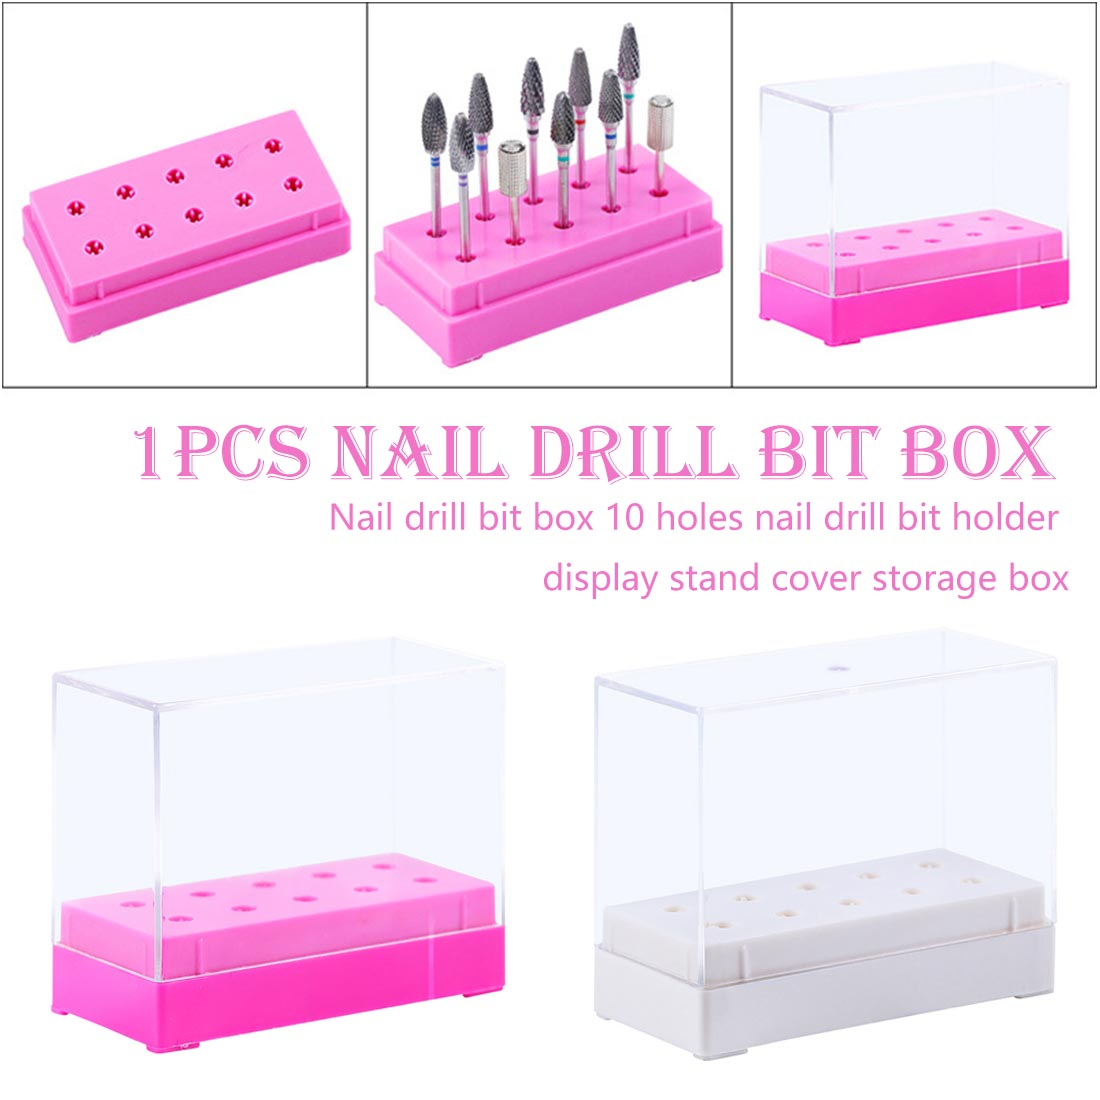 10 Slots Acrylic Manicure Tool Storage Box For Nail Drill Bit Files Holder Container Display Organizer